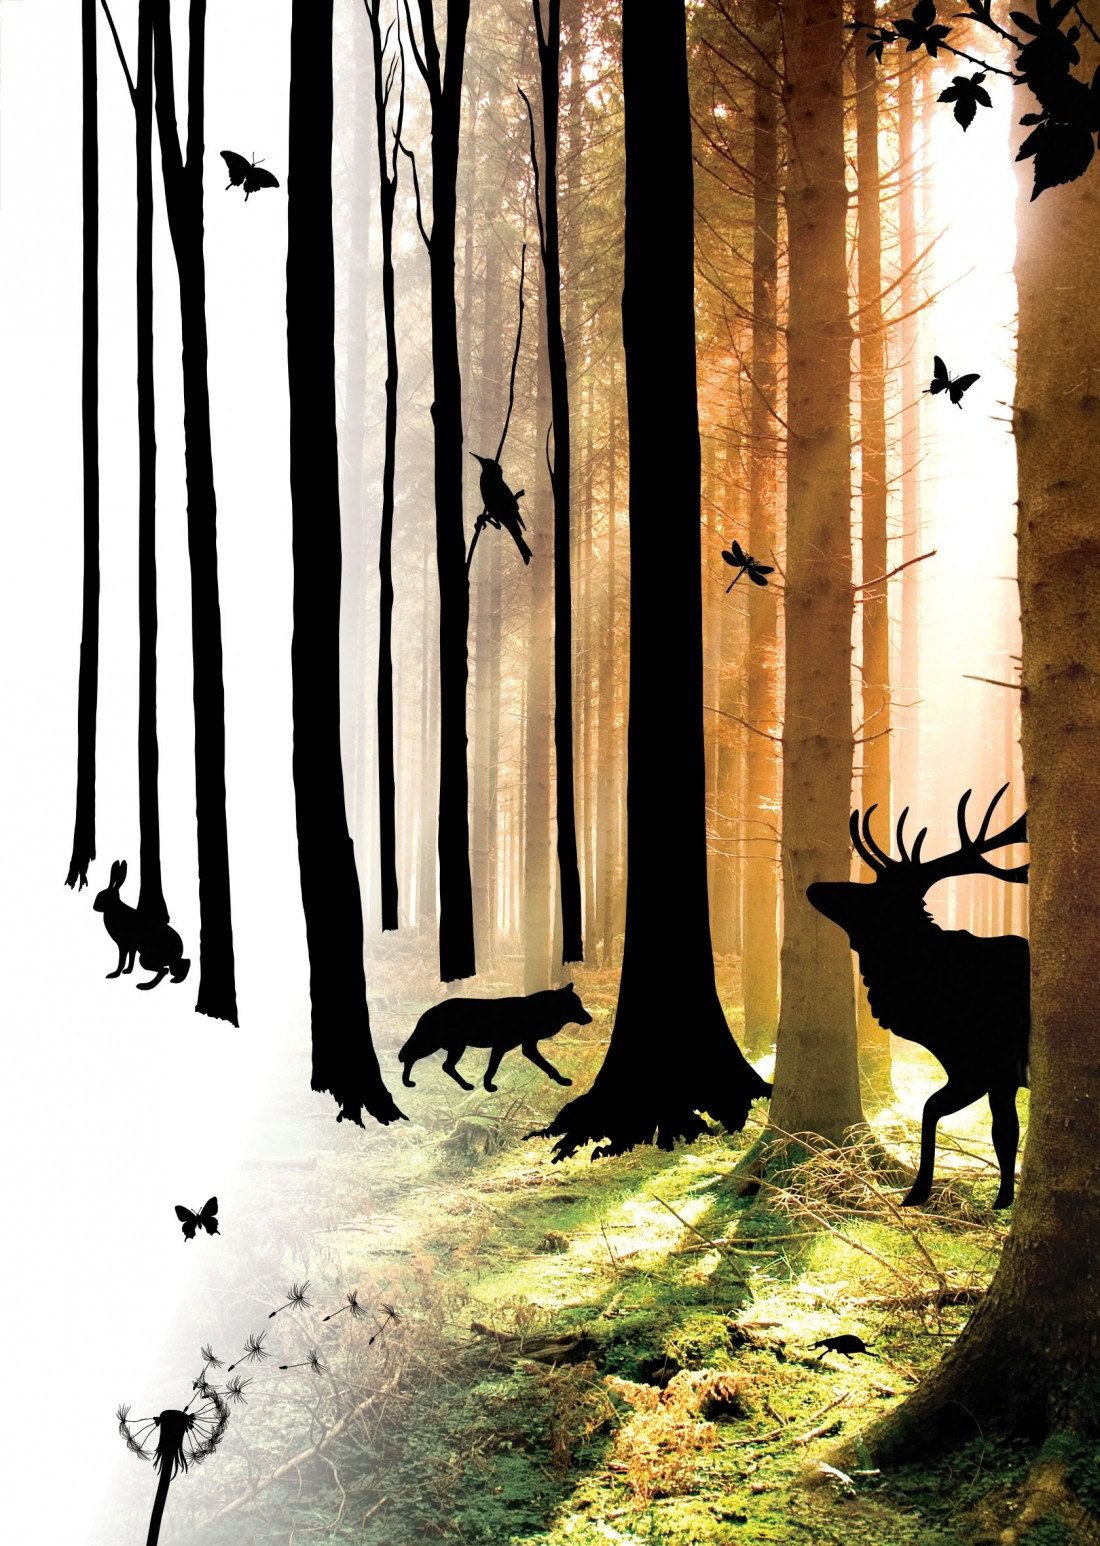 The Forest promotional artwork for the performance in Lancaster in 2012